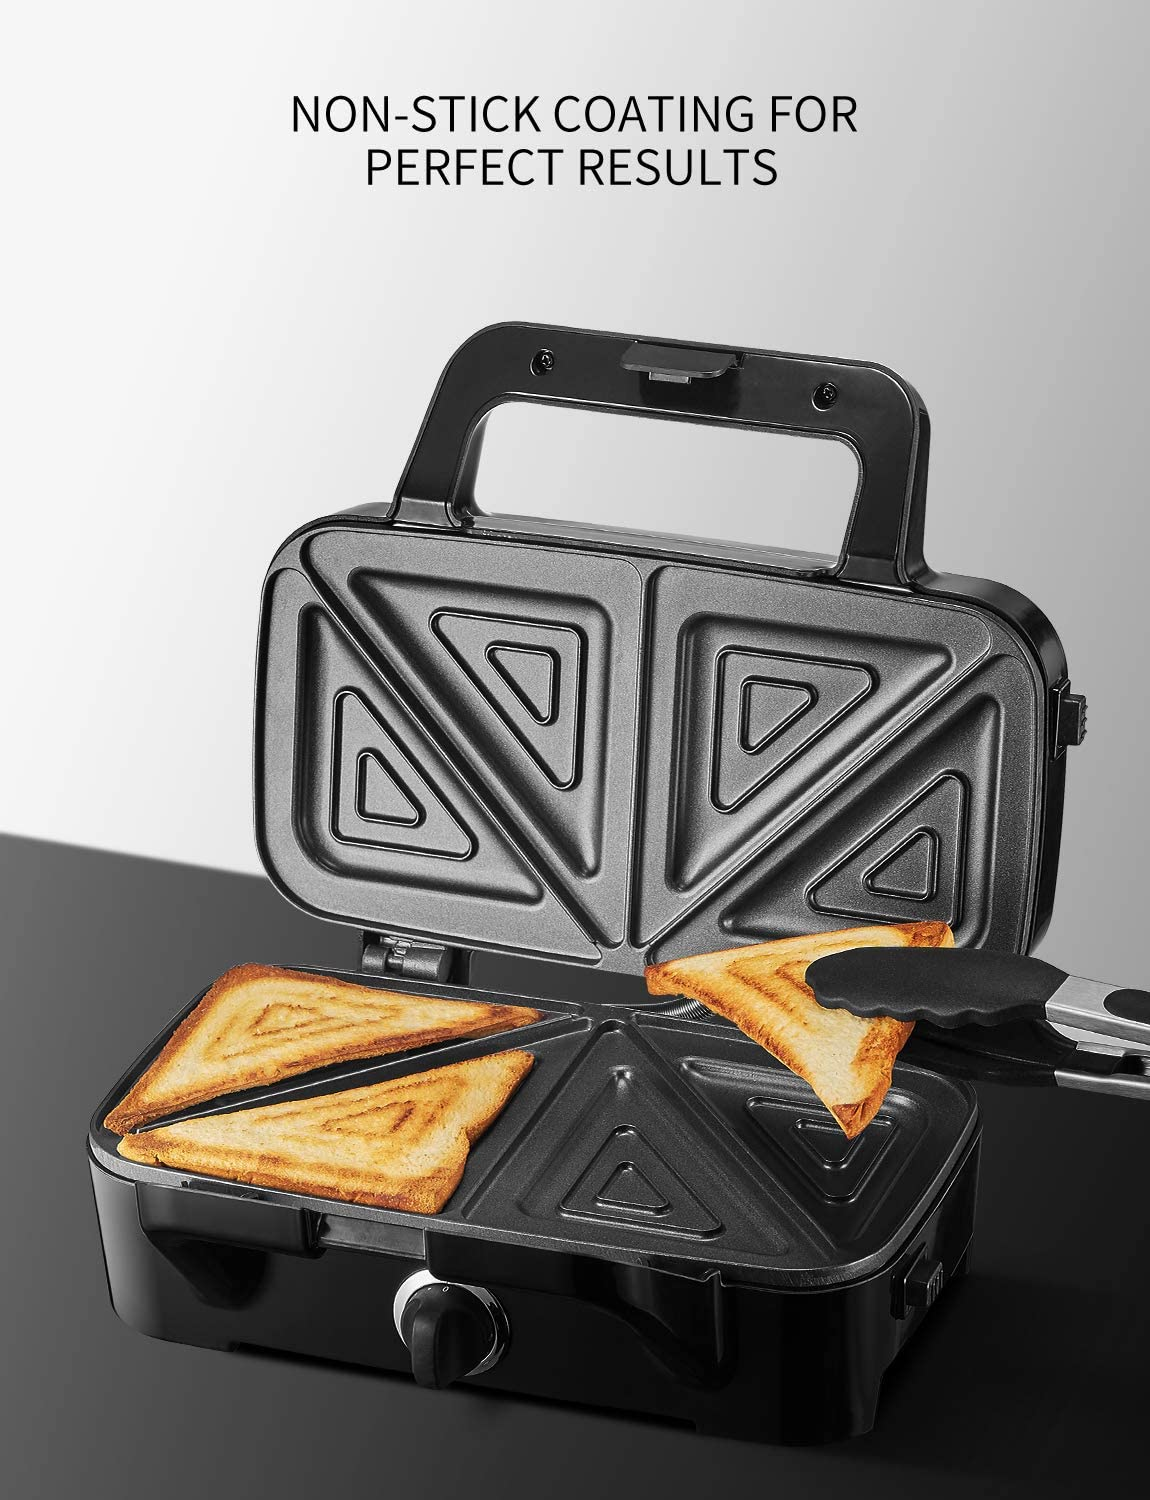 TIBEK Sandwich Maker Black Sandwich Grill 1200-Watts Cool Touch Handle 3-in-1 Detachable Non-stick Coating Easy to Clean LED Indicator Lights 5-Gears Temperature Control Waffle Maker